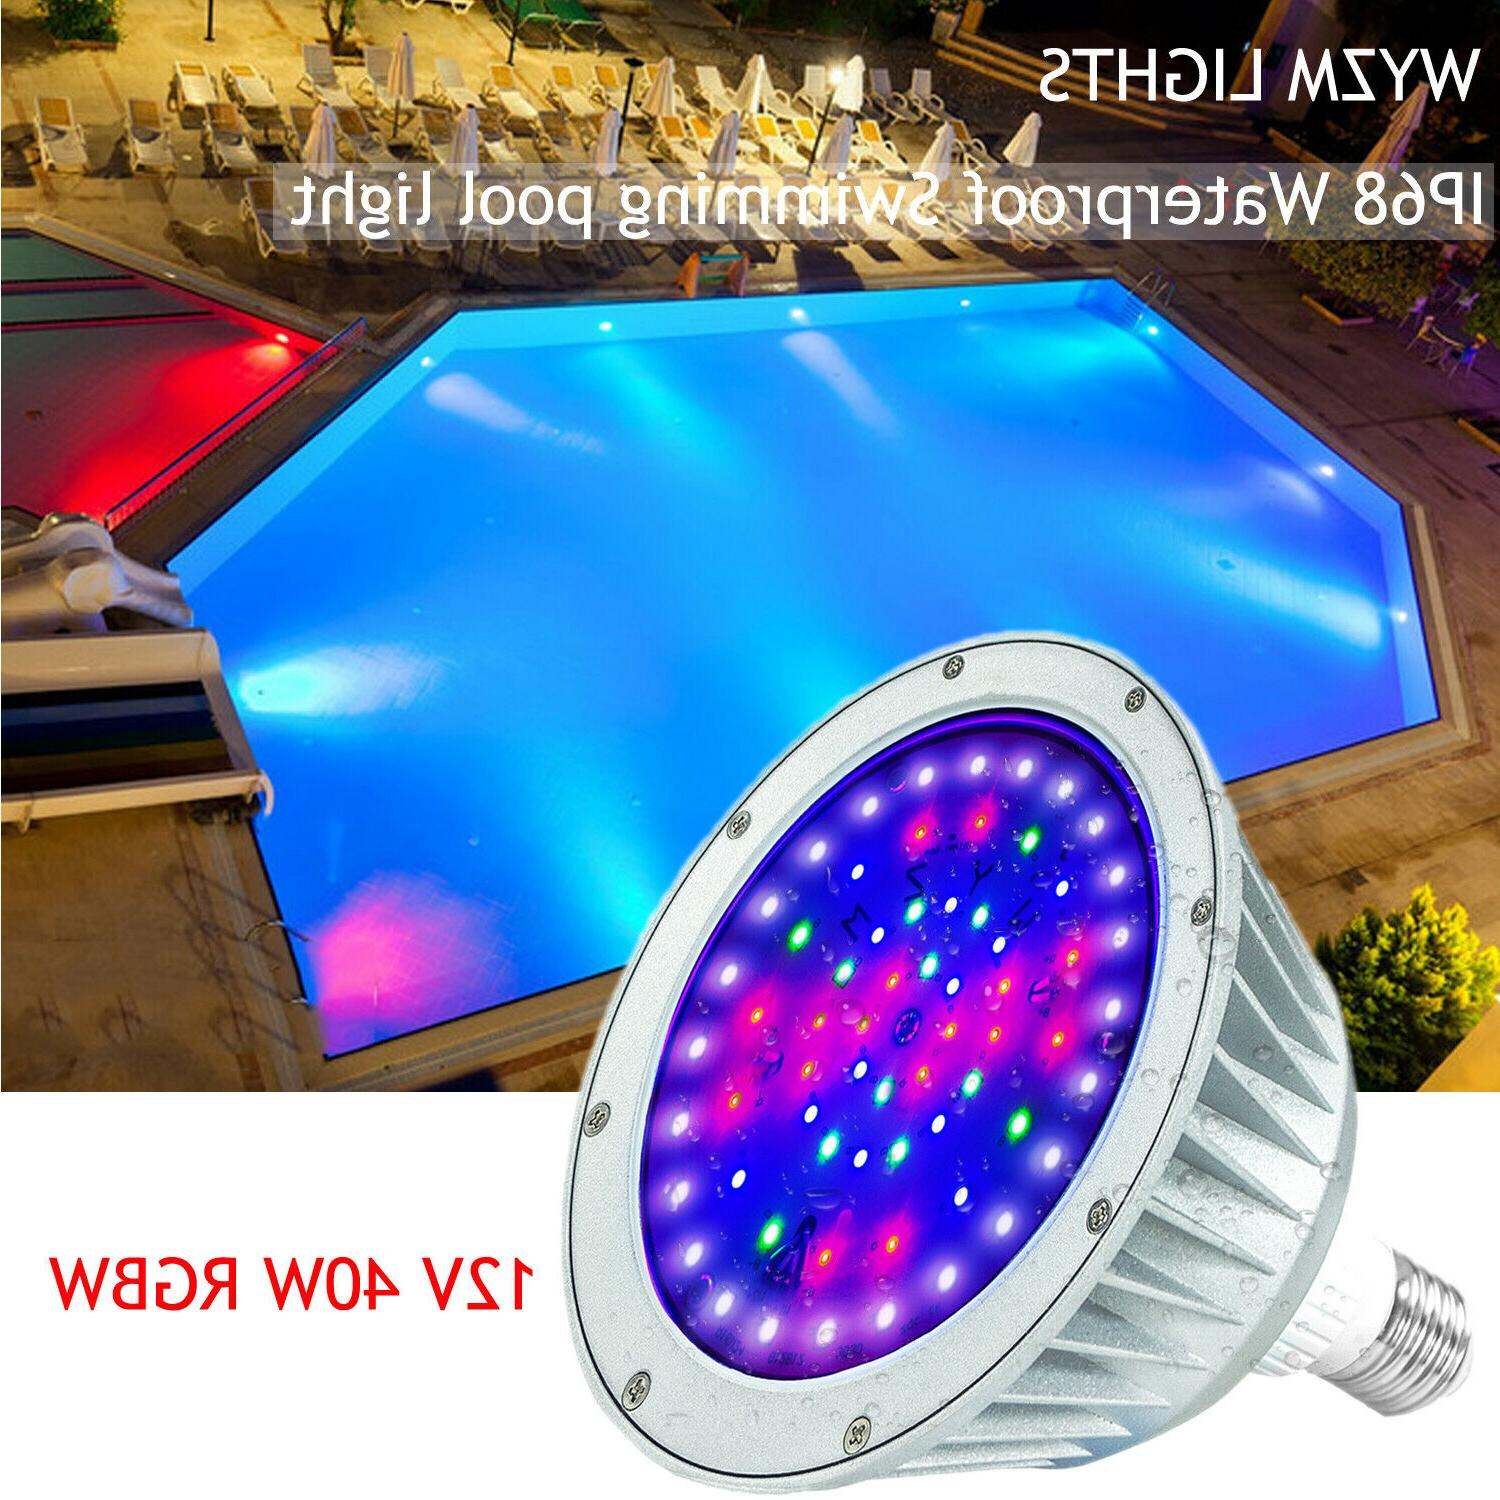 40w color changing led pool light